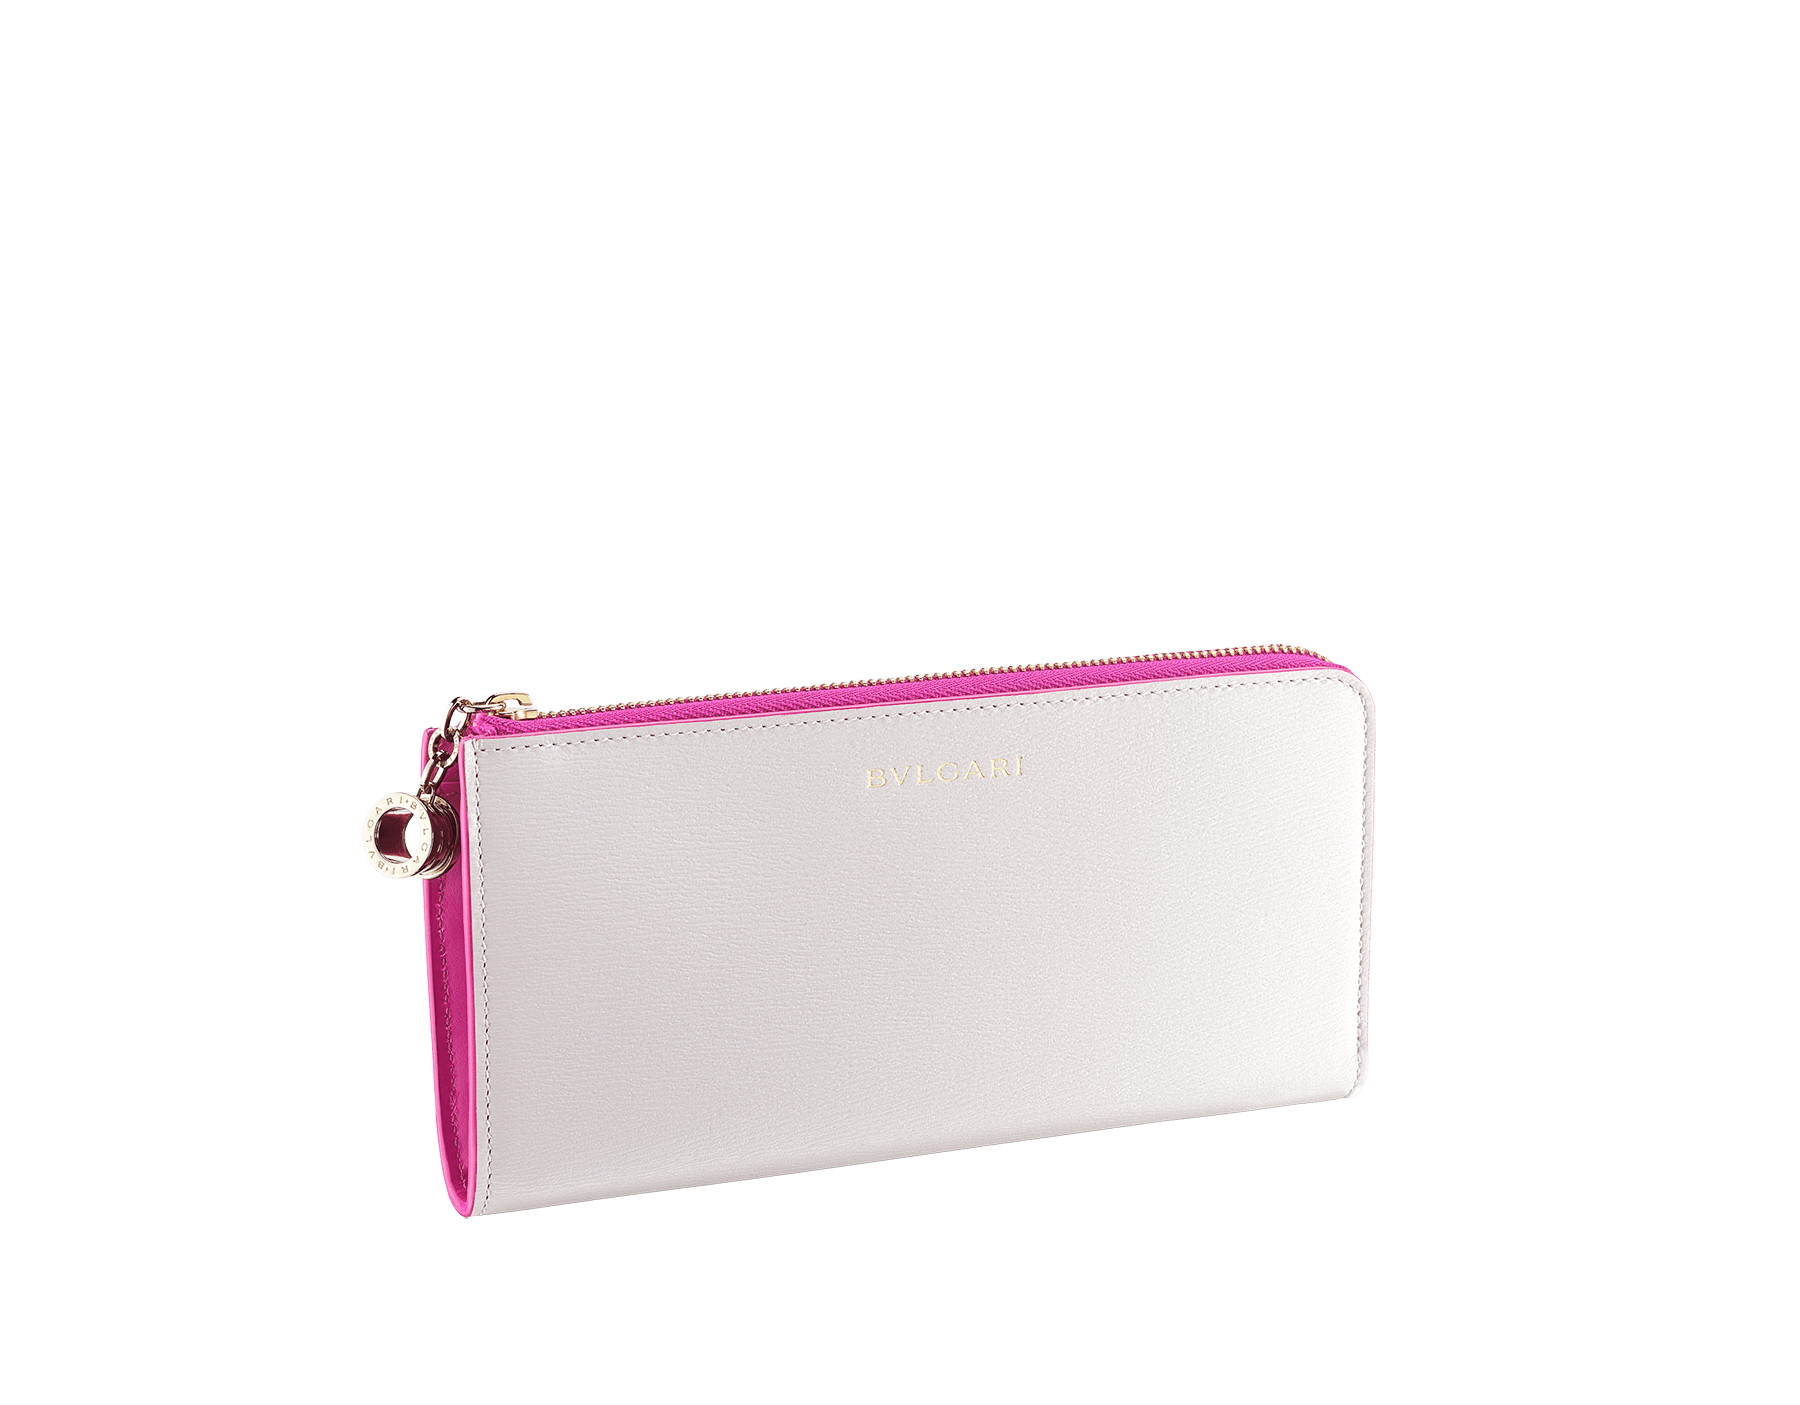 """B.zero1"" large L-shaped zipped wallet in white agate and berry tourmaline goatskin and berry tourmaline calf leather. Iconic B.zero1 zip puller in light gold-plated brass. 289785 image 1"